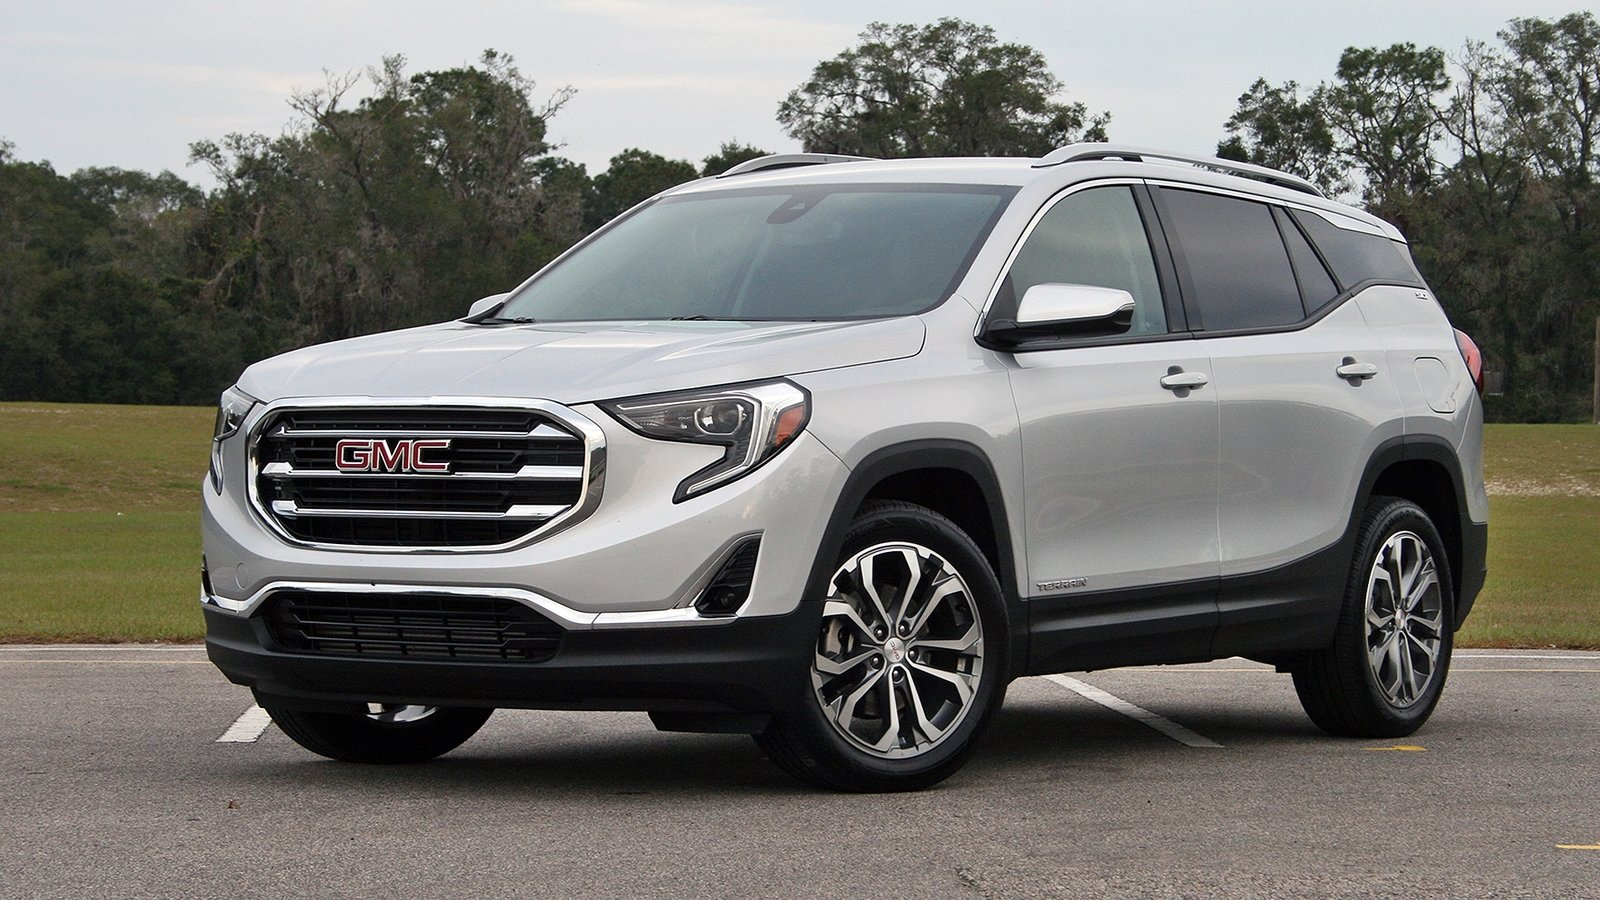 2018 GMC Terrain – Driven Pictures, Photos, Wallpapers And ...